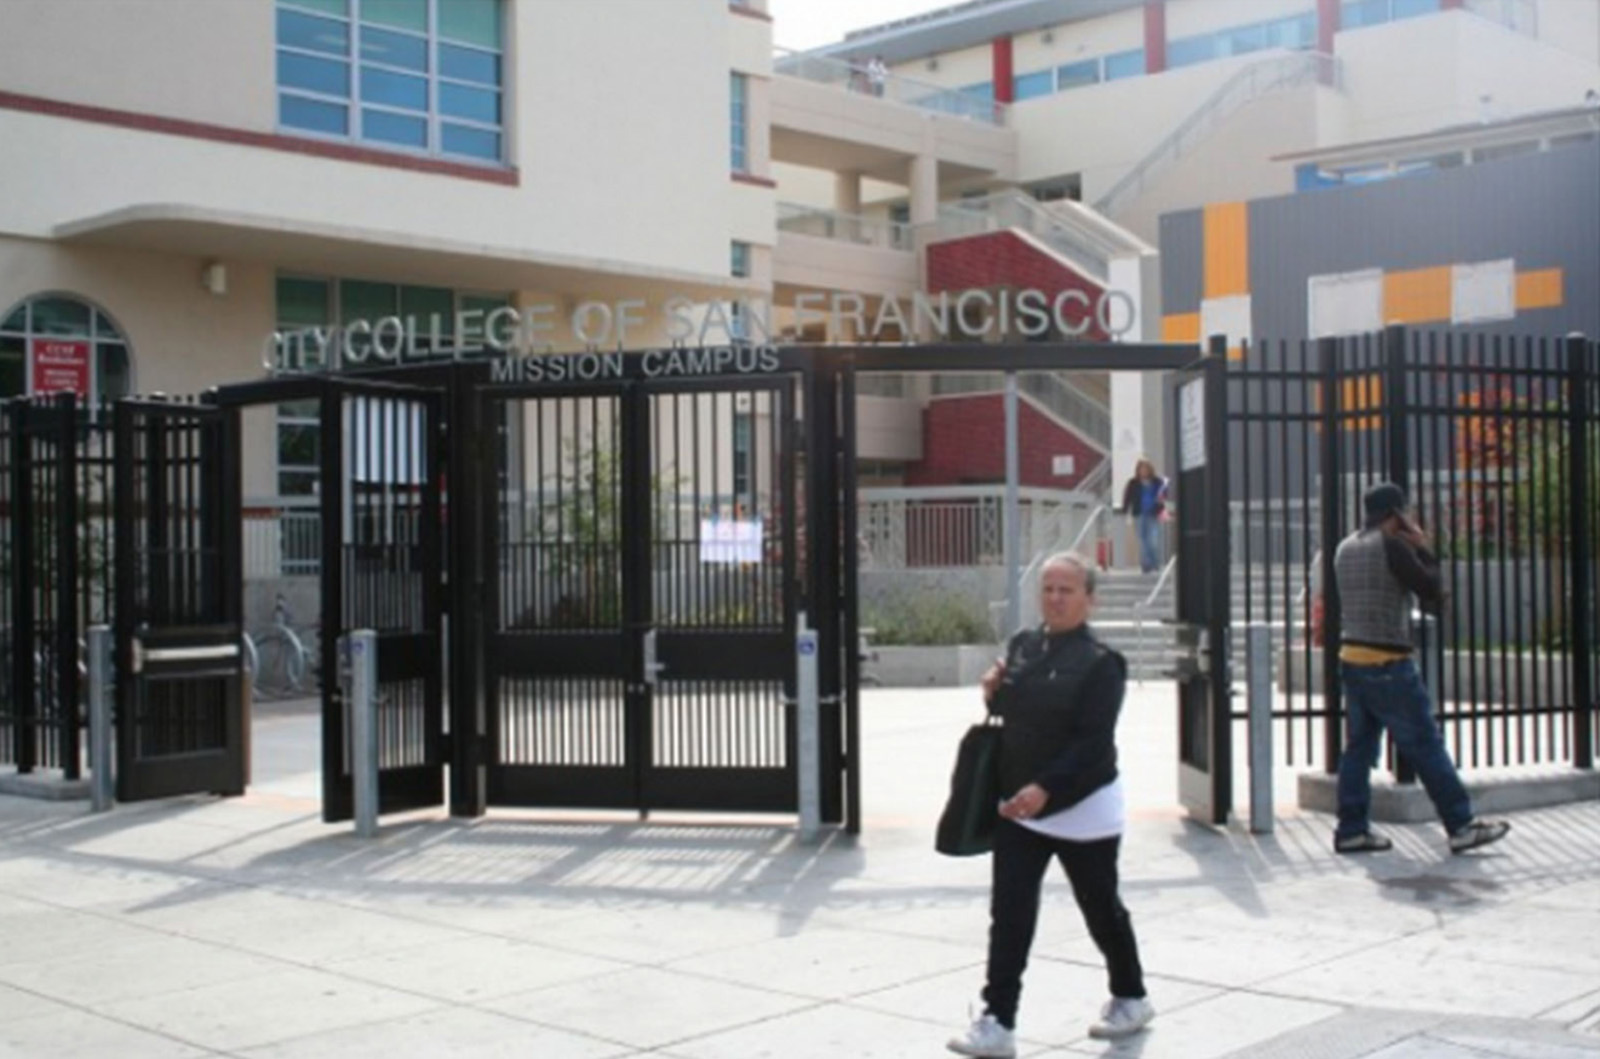 The City College of San Francisco Mission District campus. Photo by Mission Local staff.